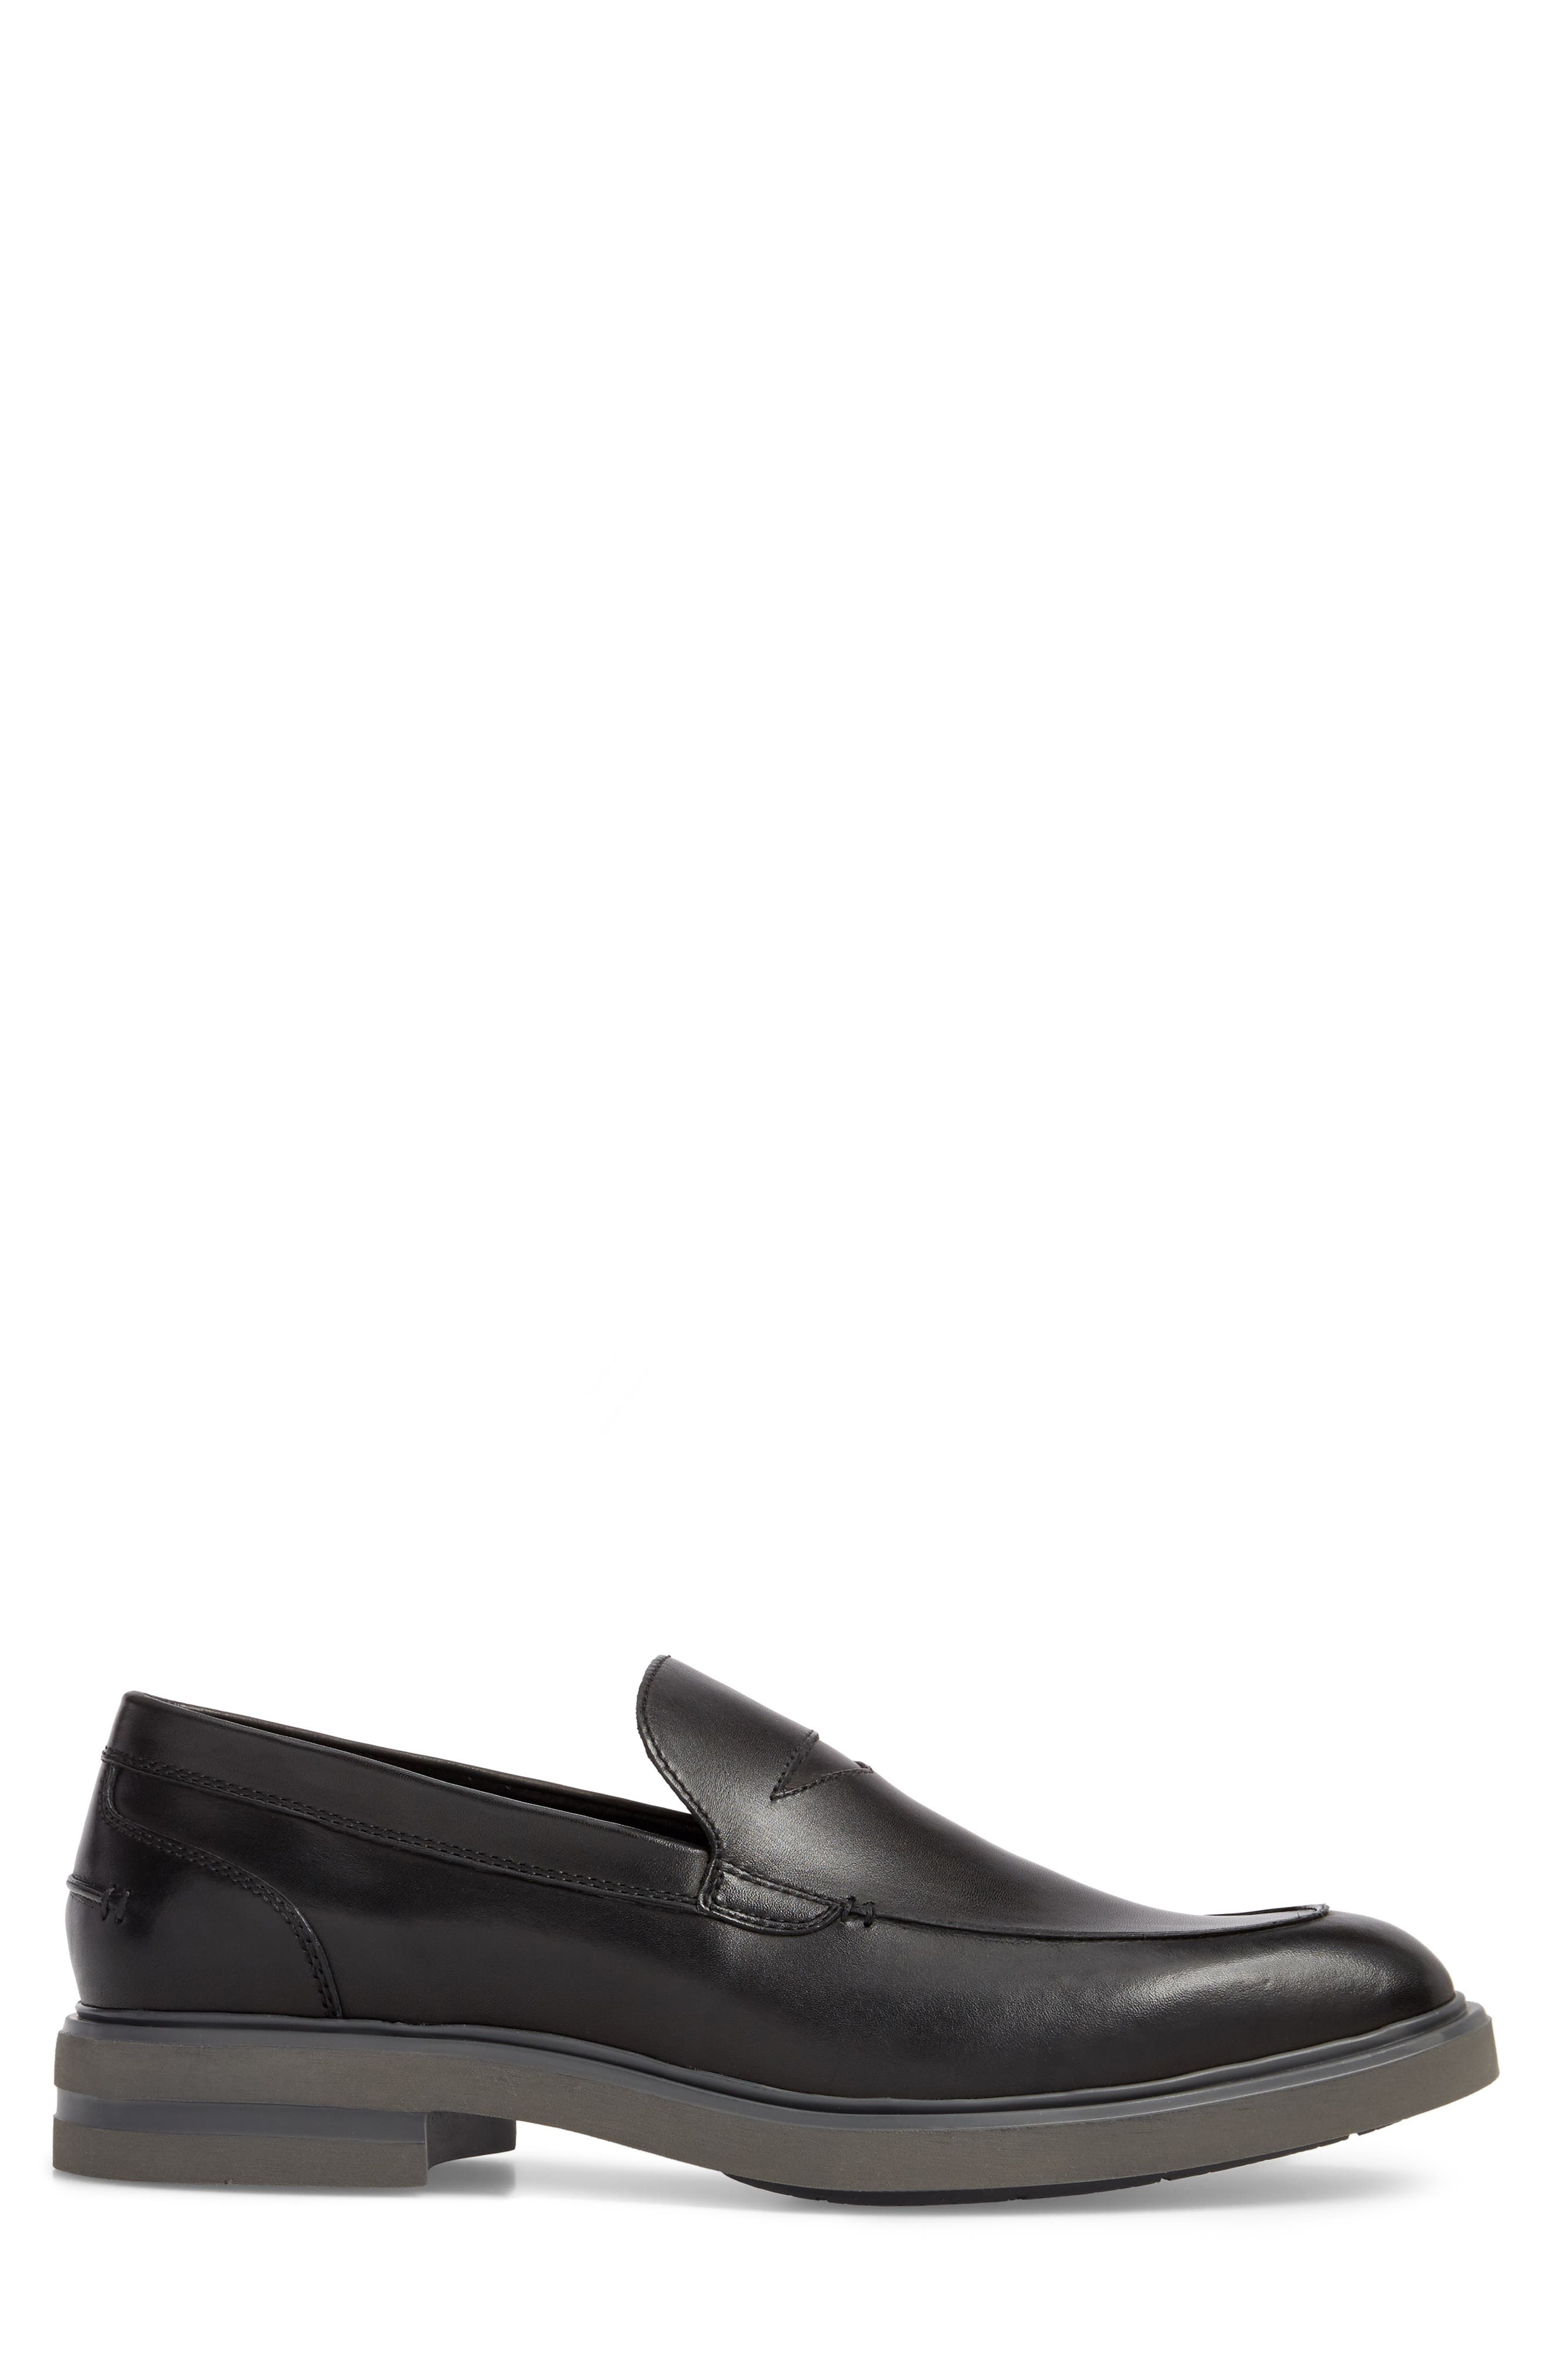 Edwyn Deconstructed Penny Loafer,                             Alternate thumbnail 3, color,                             Black Leather